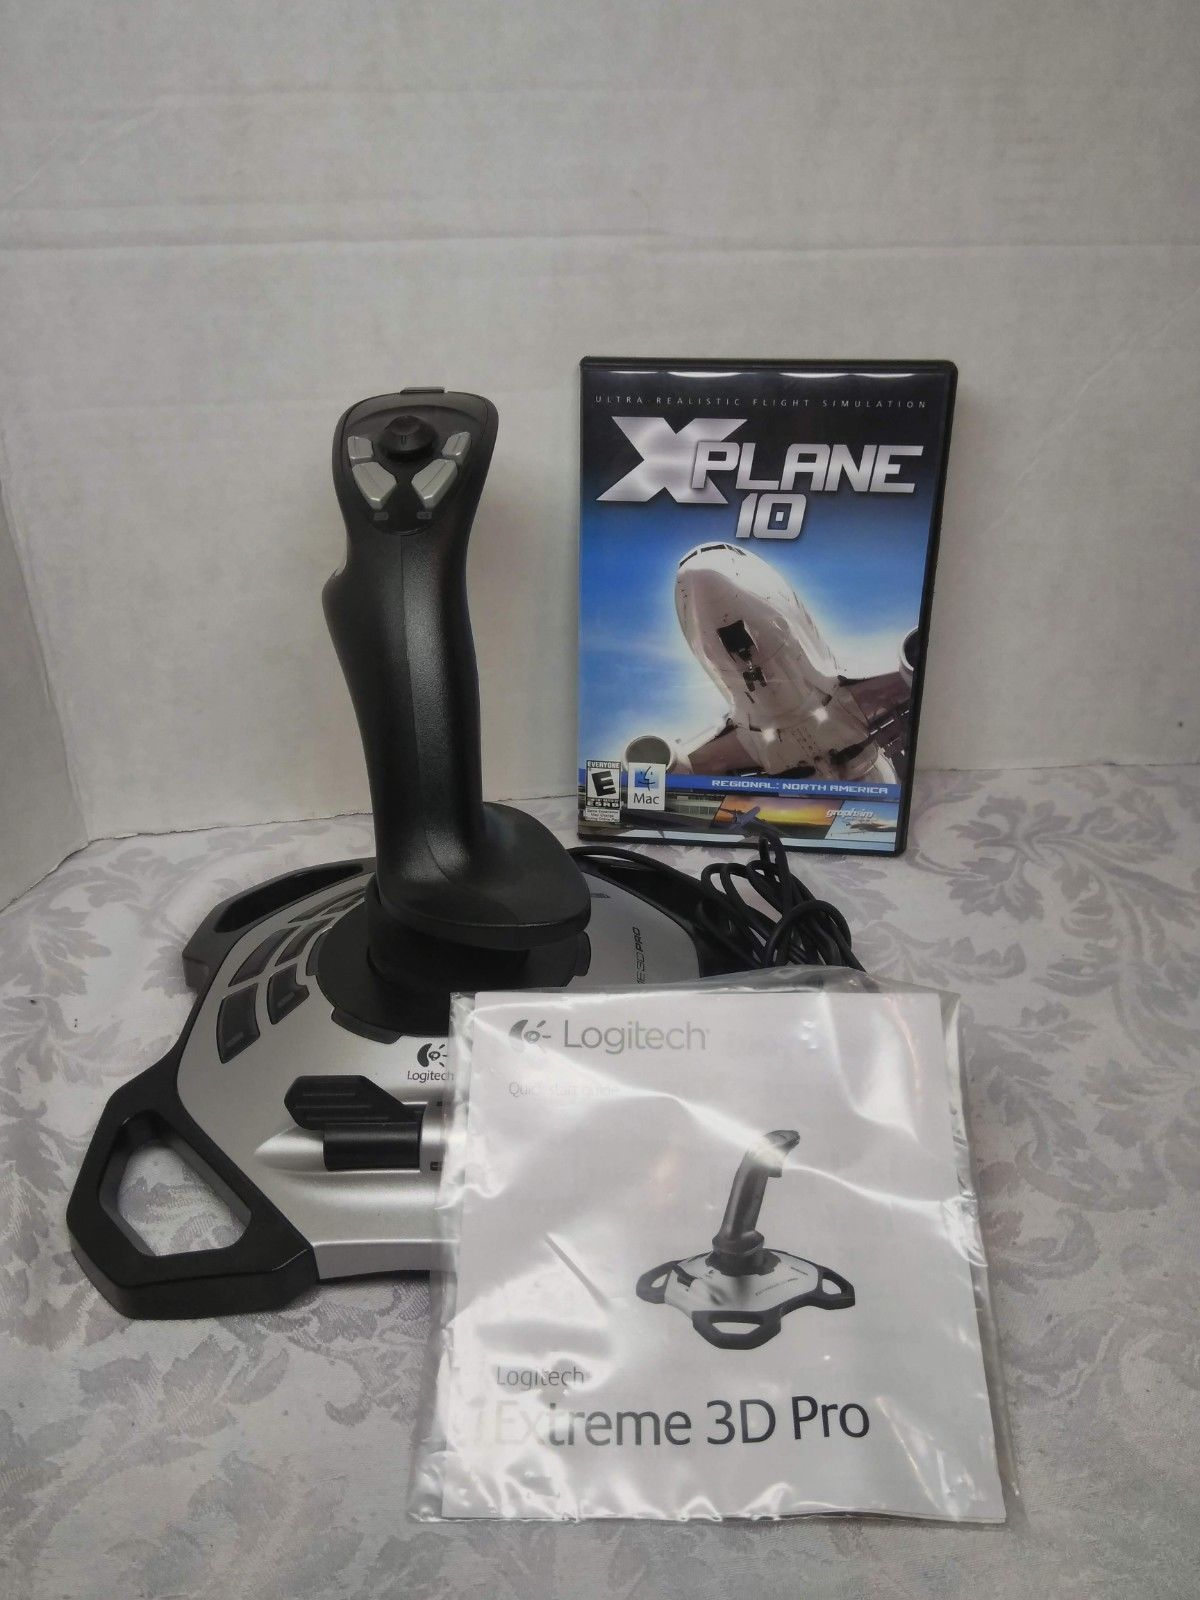 Logitech Extreme 3D Pro With X Plane 10 Game and 25 similar